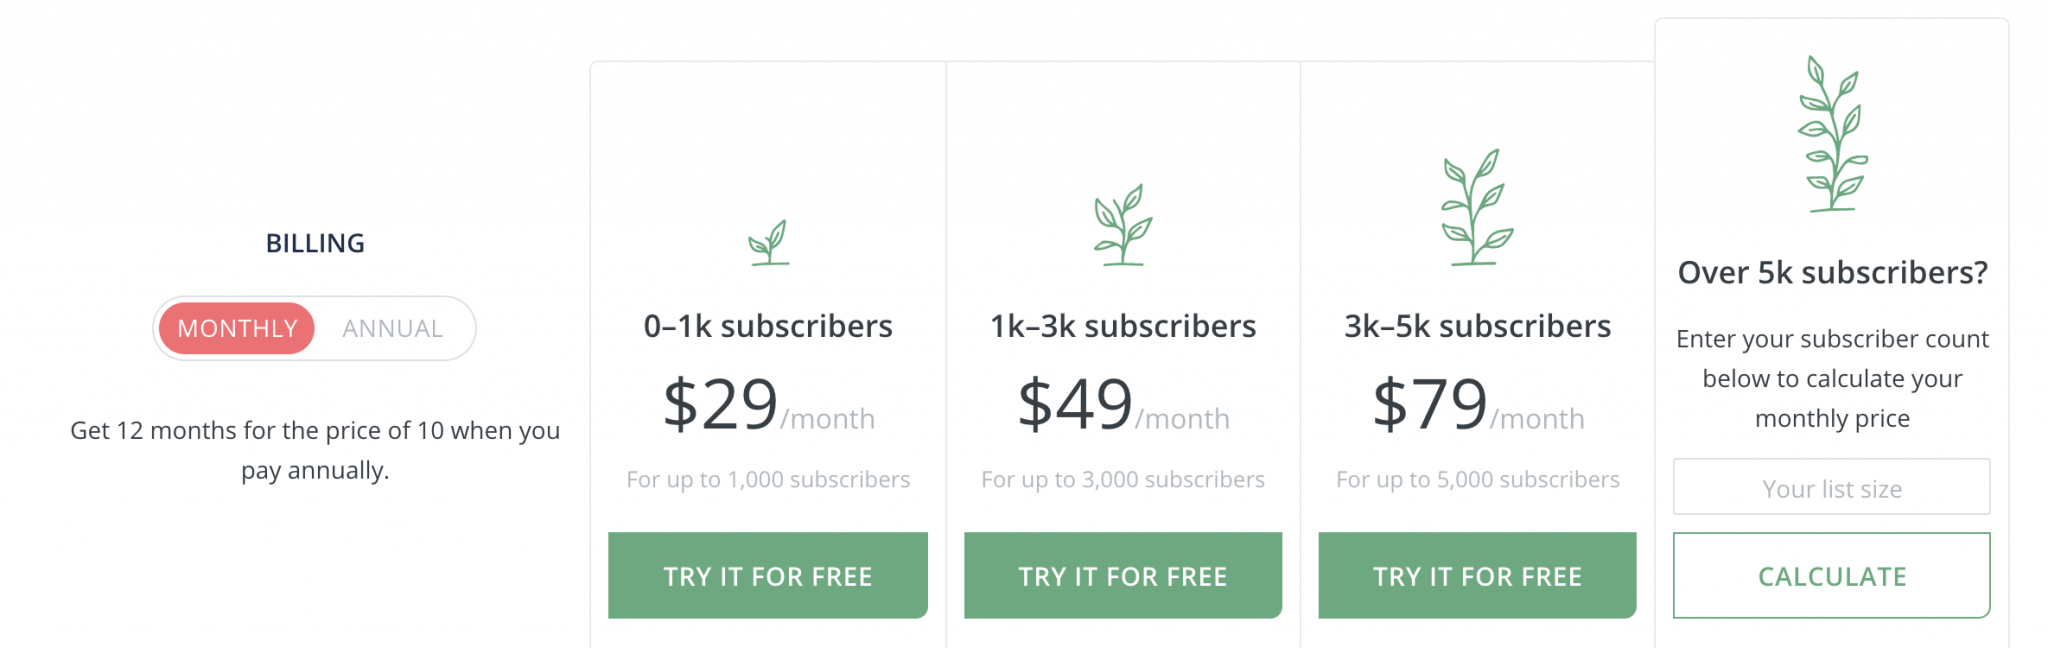 25% Off Online Coupon Convertkit Email Marketing May 2020